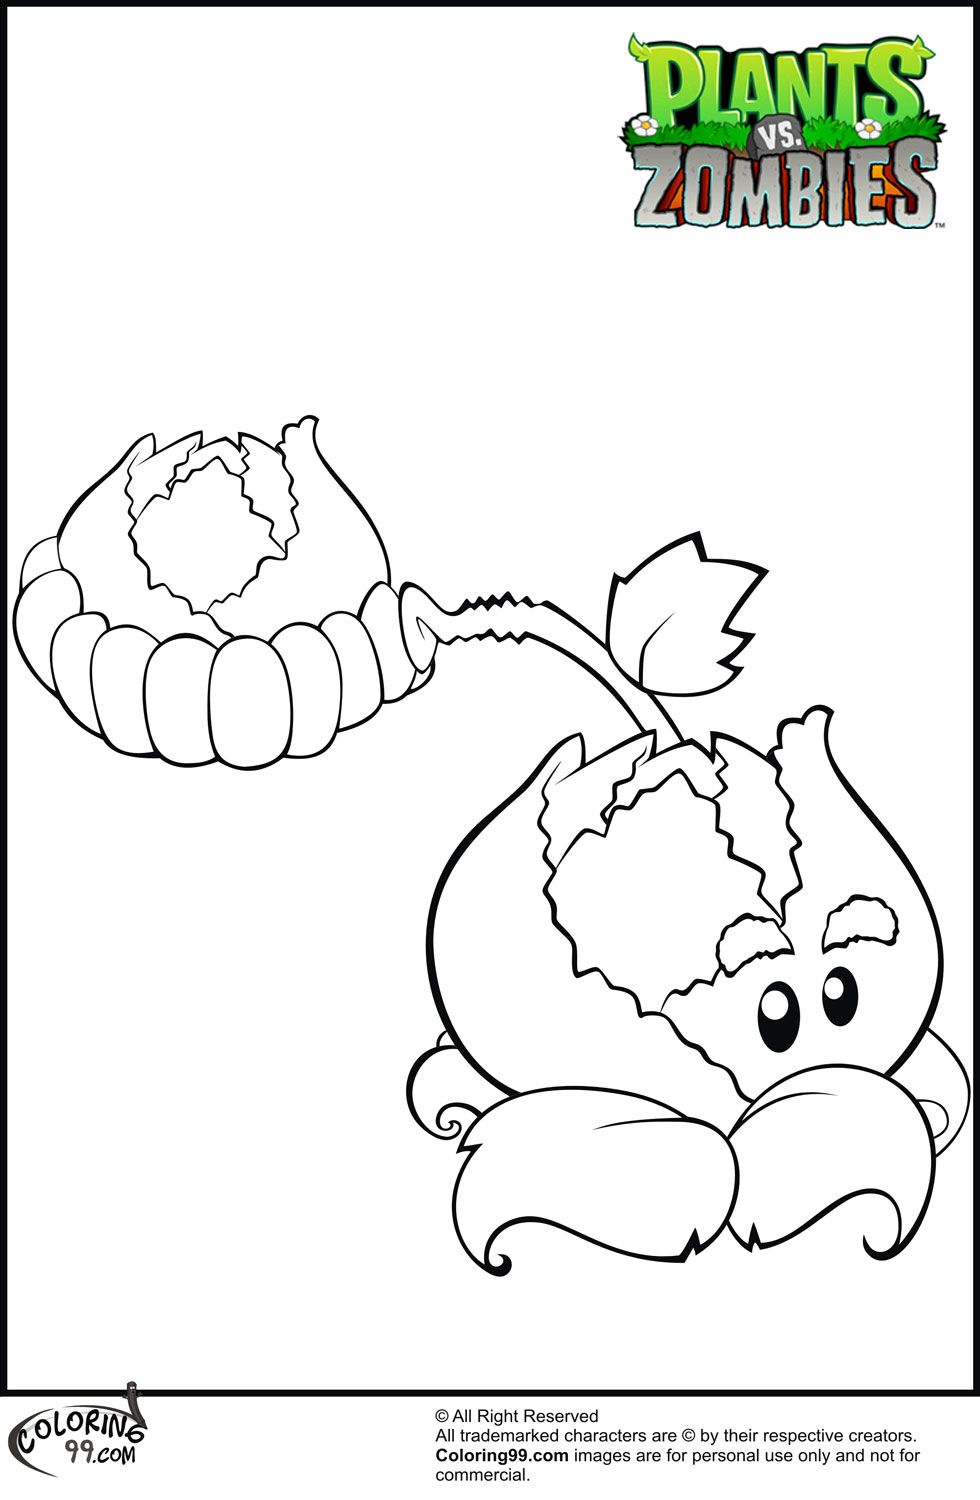 Plants v zombies coloring pages - Cabbage Pult Plants Vs Zombies Coloring Pages Jpg